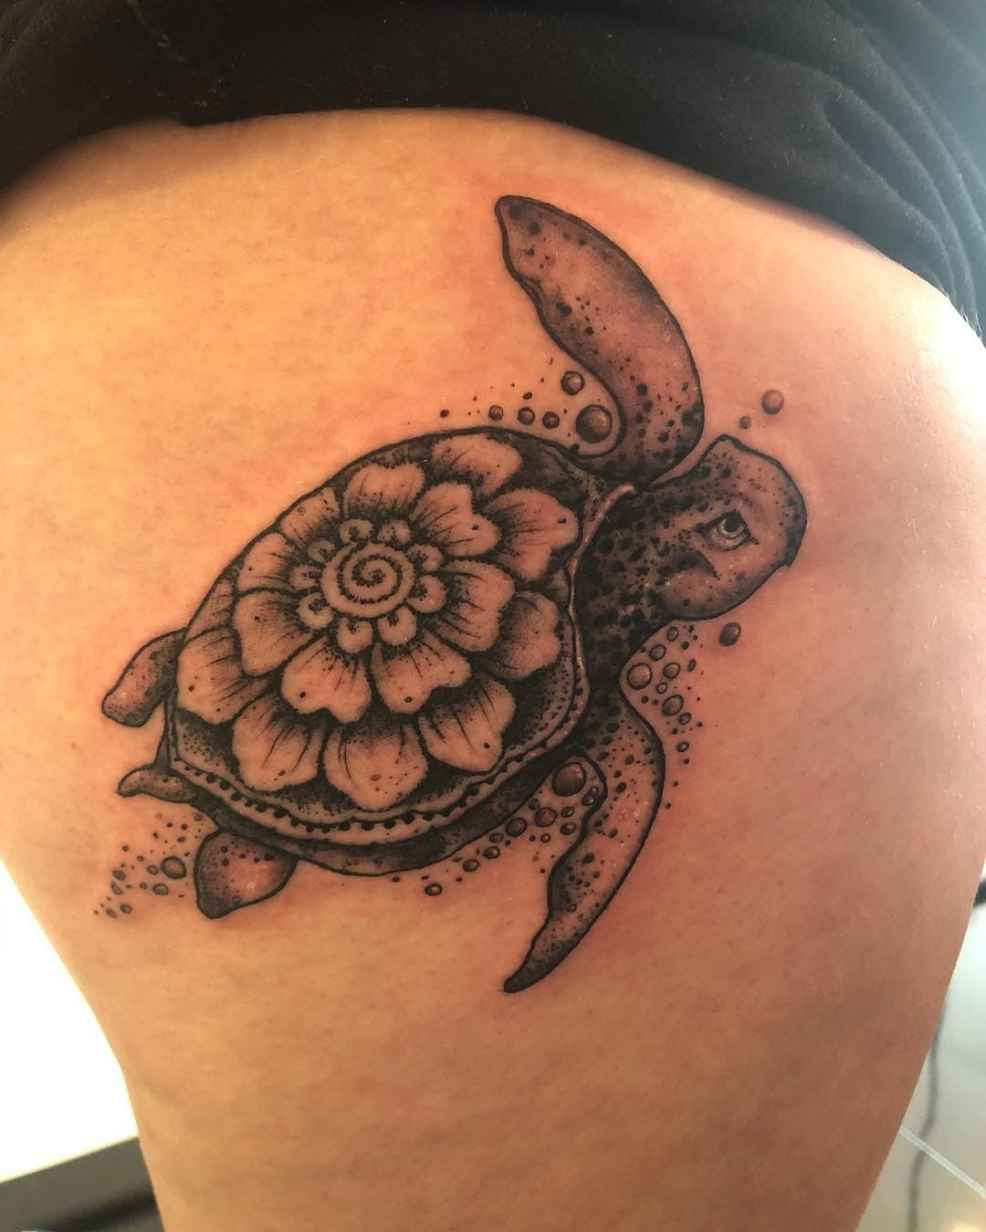 125 Unique Turtle Tattoos With Meanings And Symbolisms That You Can